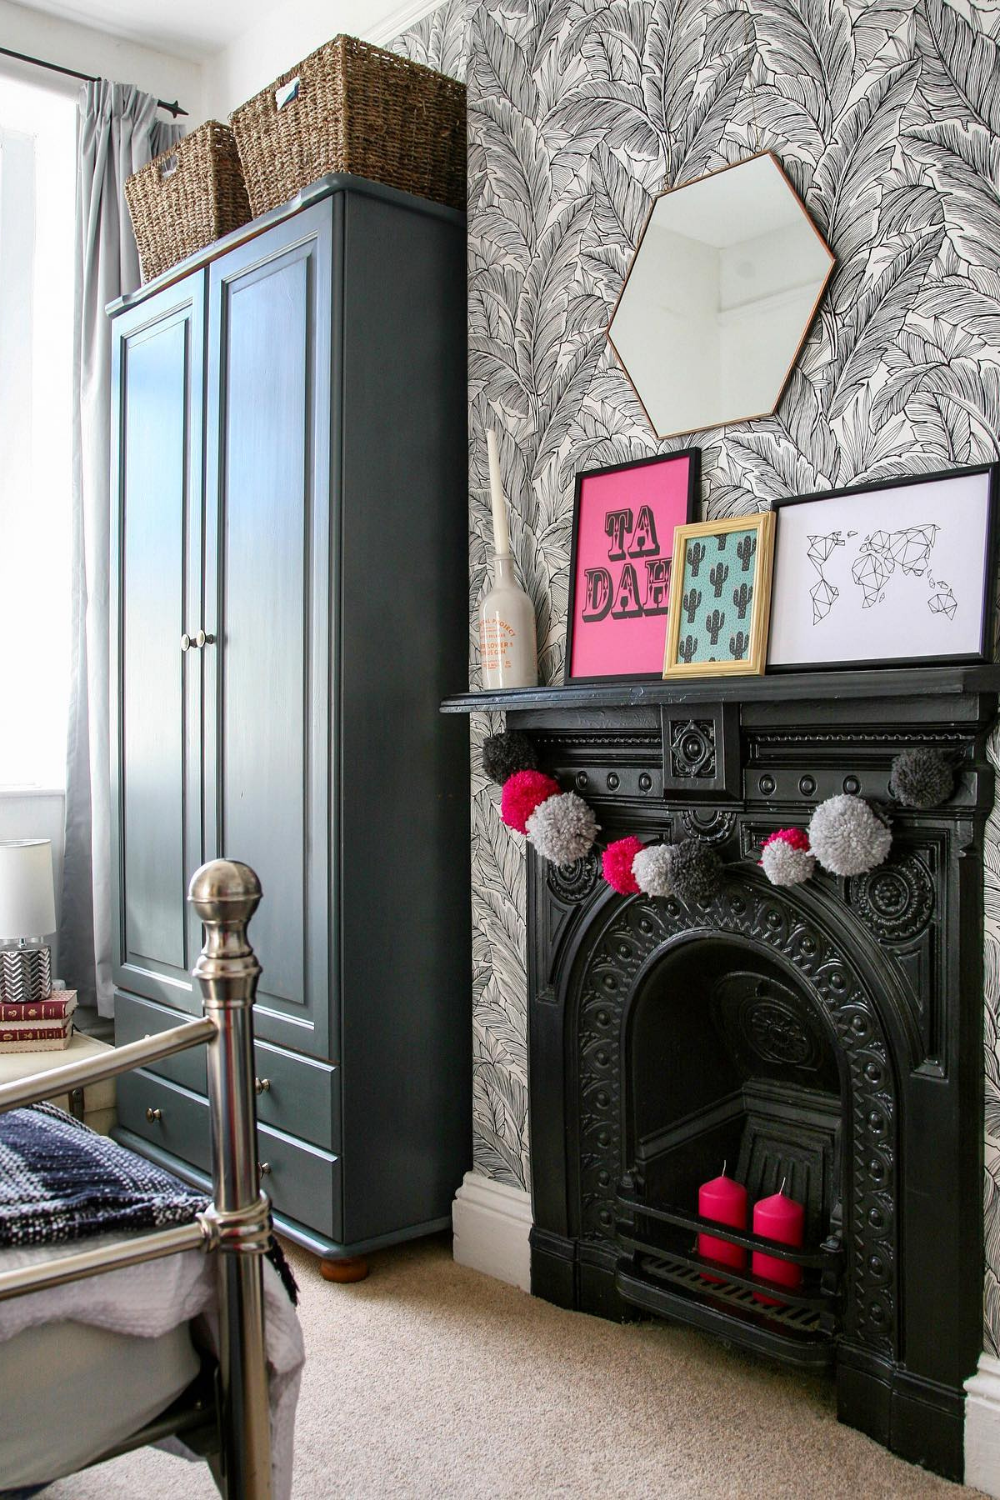 10 DIY Projects in Lockdown - a black fireplace with leaf wallpaper and bright pink pom pom accessories.